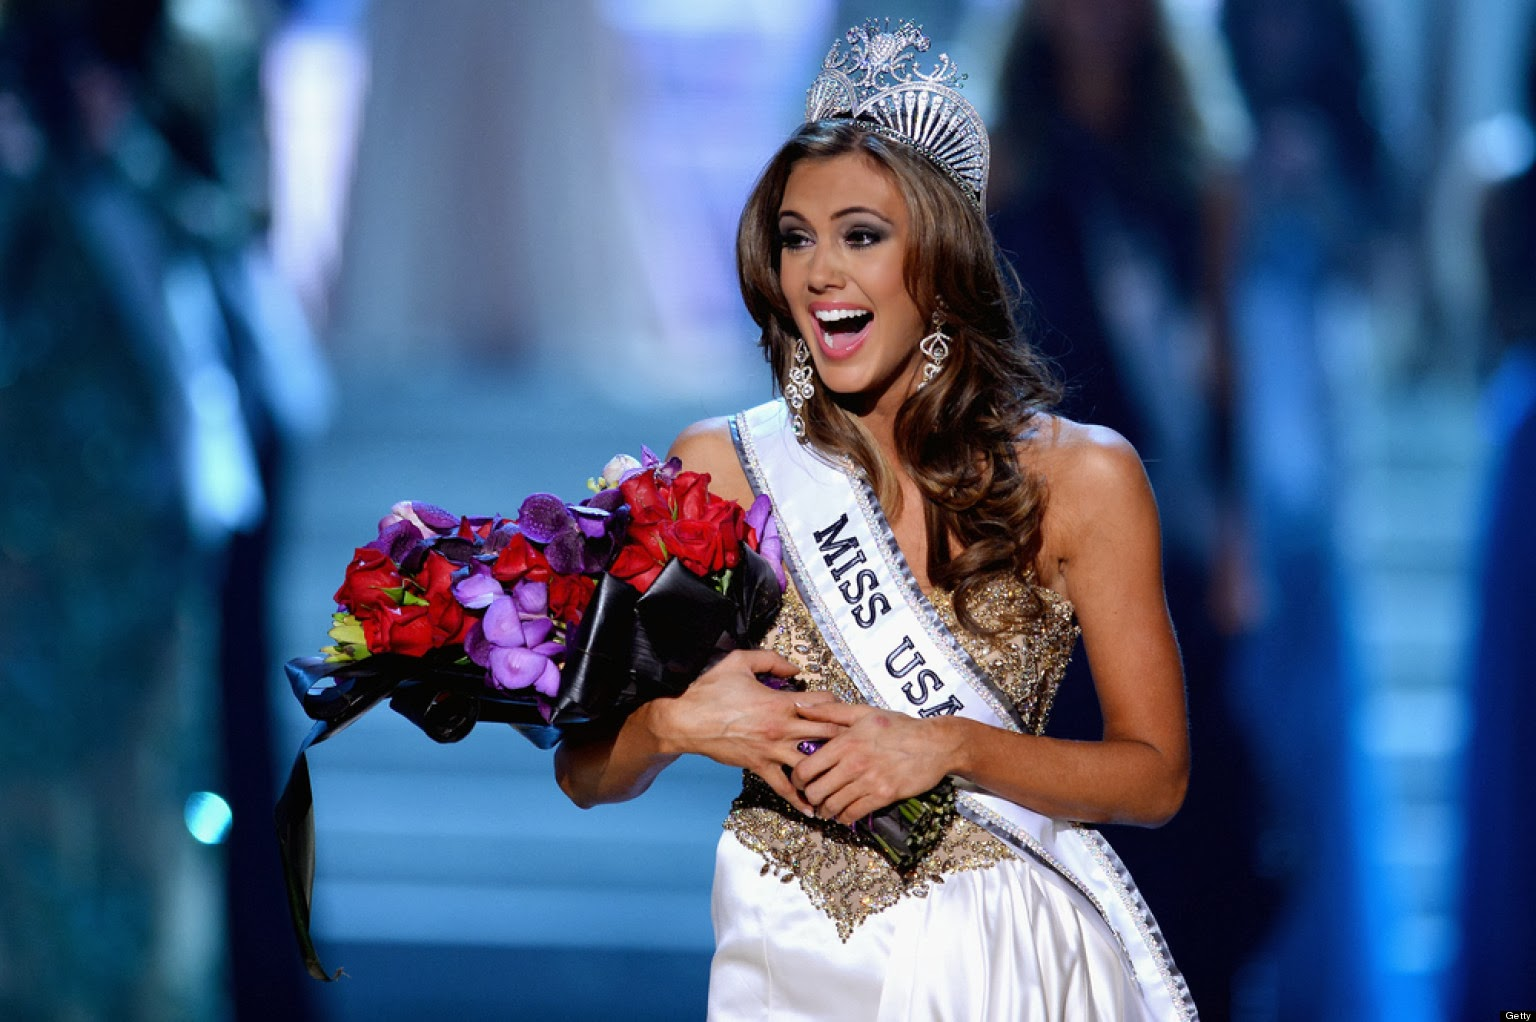 Eye For Beauty: Miss USA 2014 To Be Crowned in Baton Rouge, Louisiana